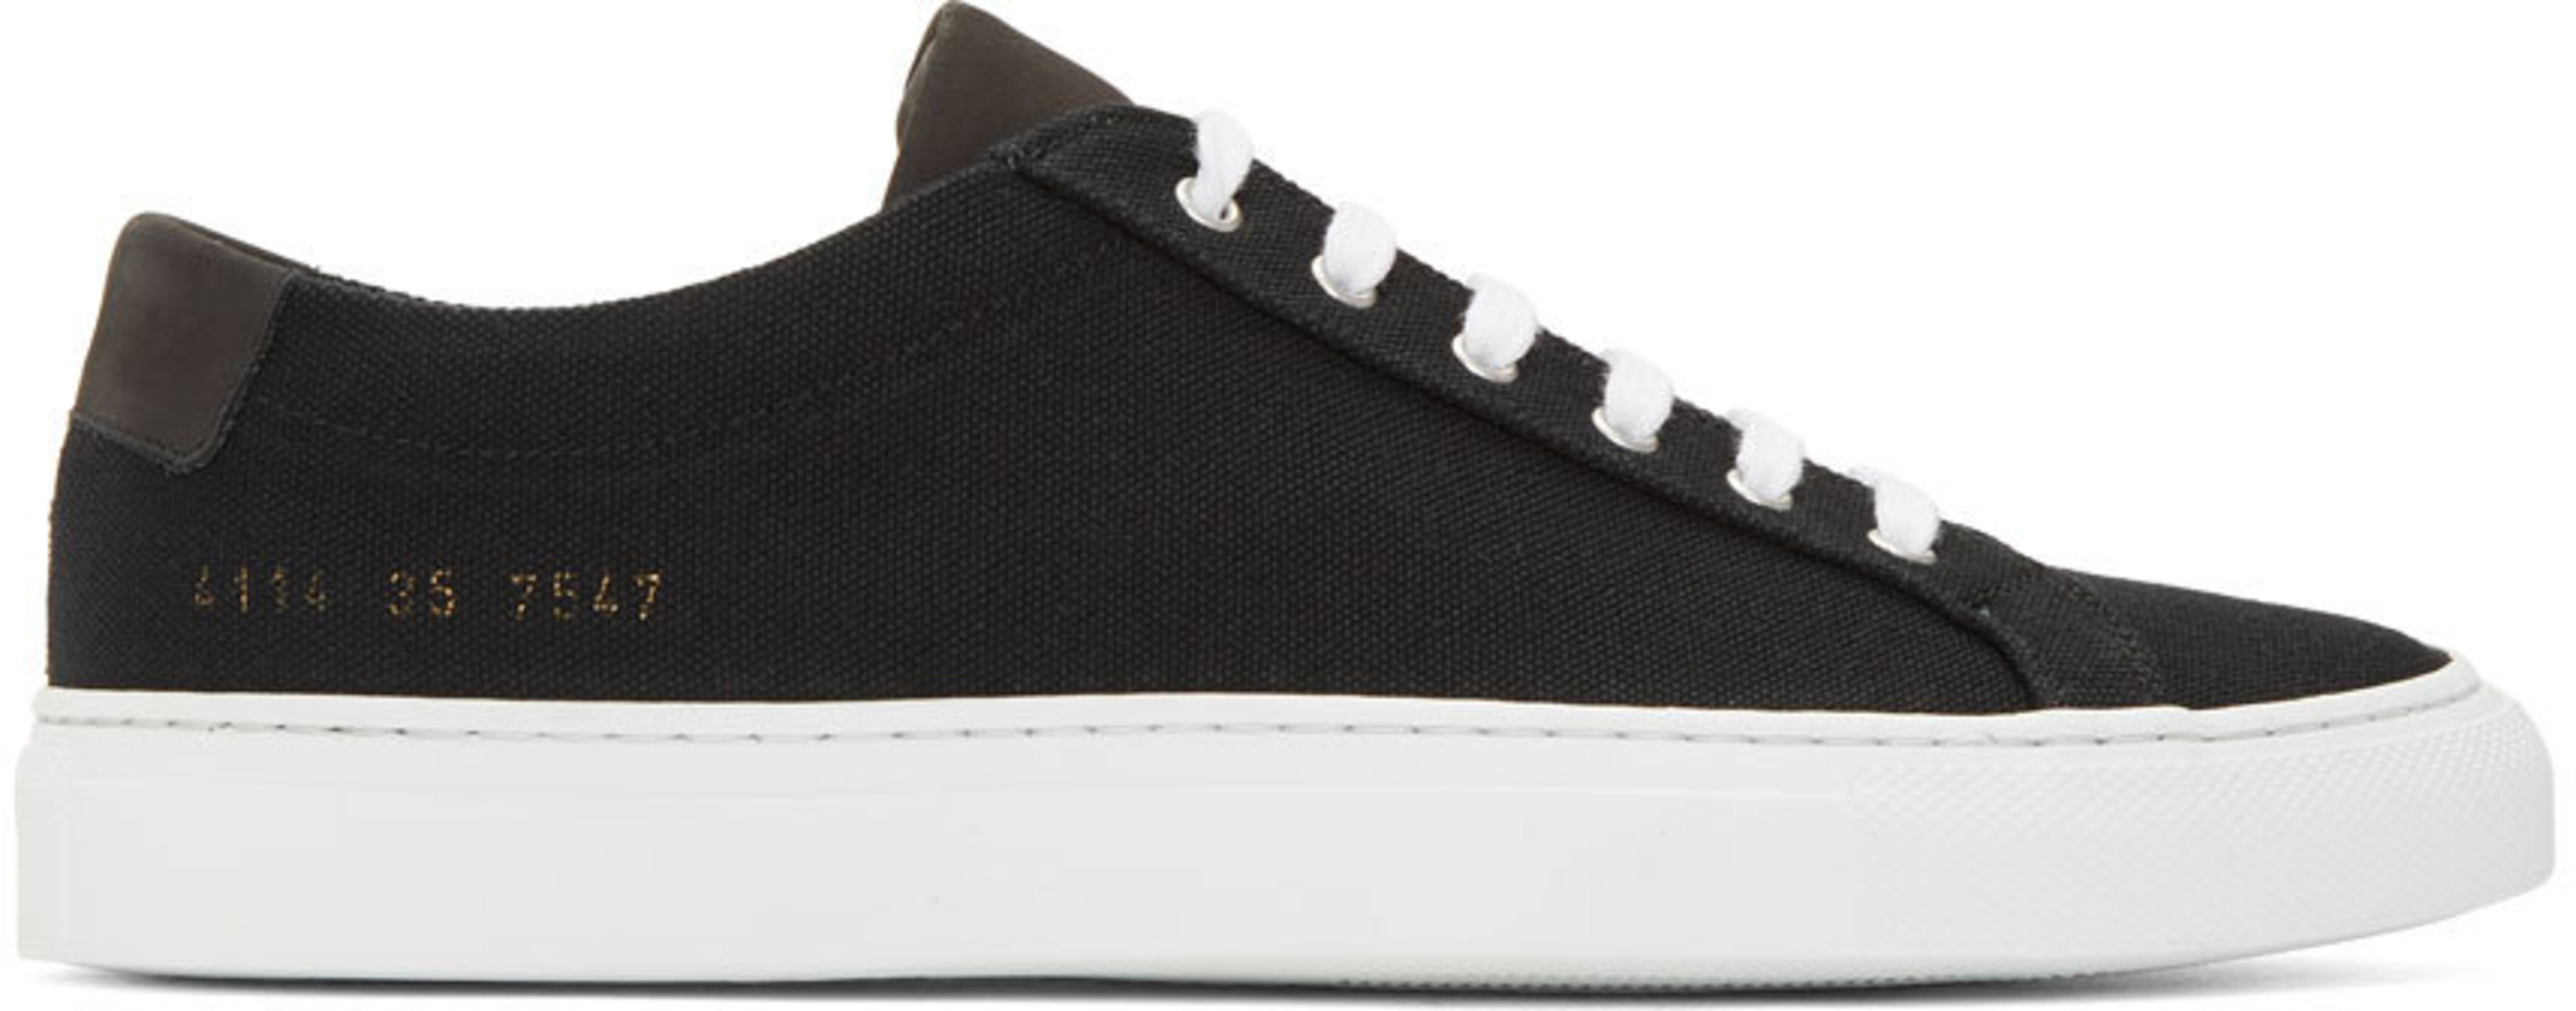 b0b54c2a7901 Woman By Common Projects for Women SS19 Collection